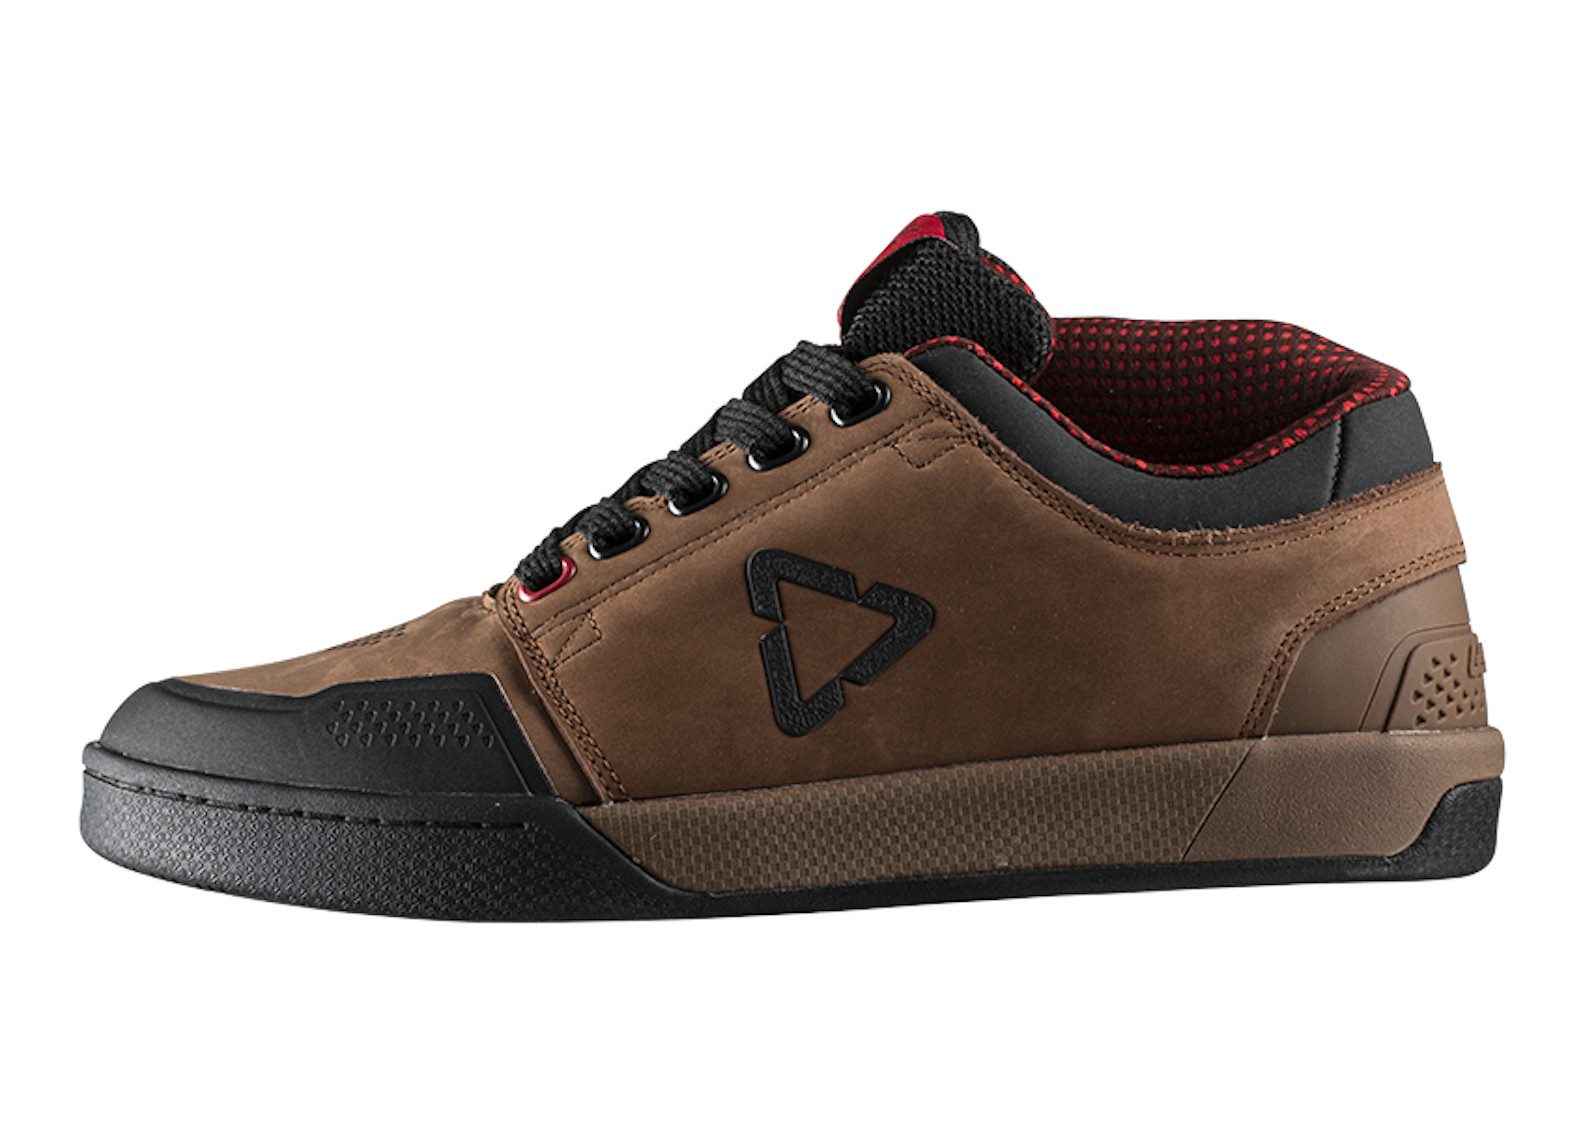 Aaron Chase Signature Leatt DBX 3.0 (Distressed Leather)